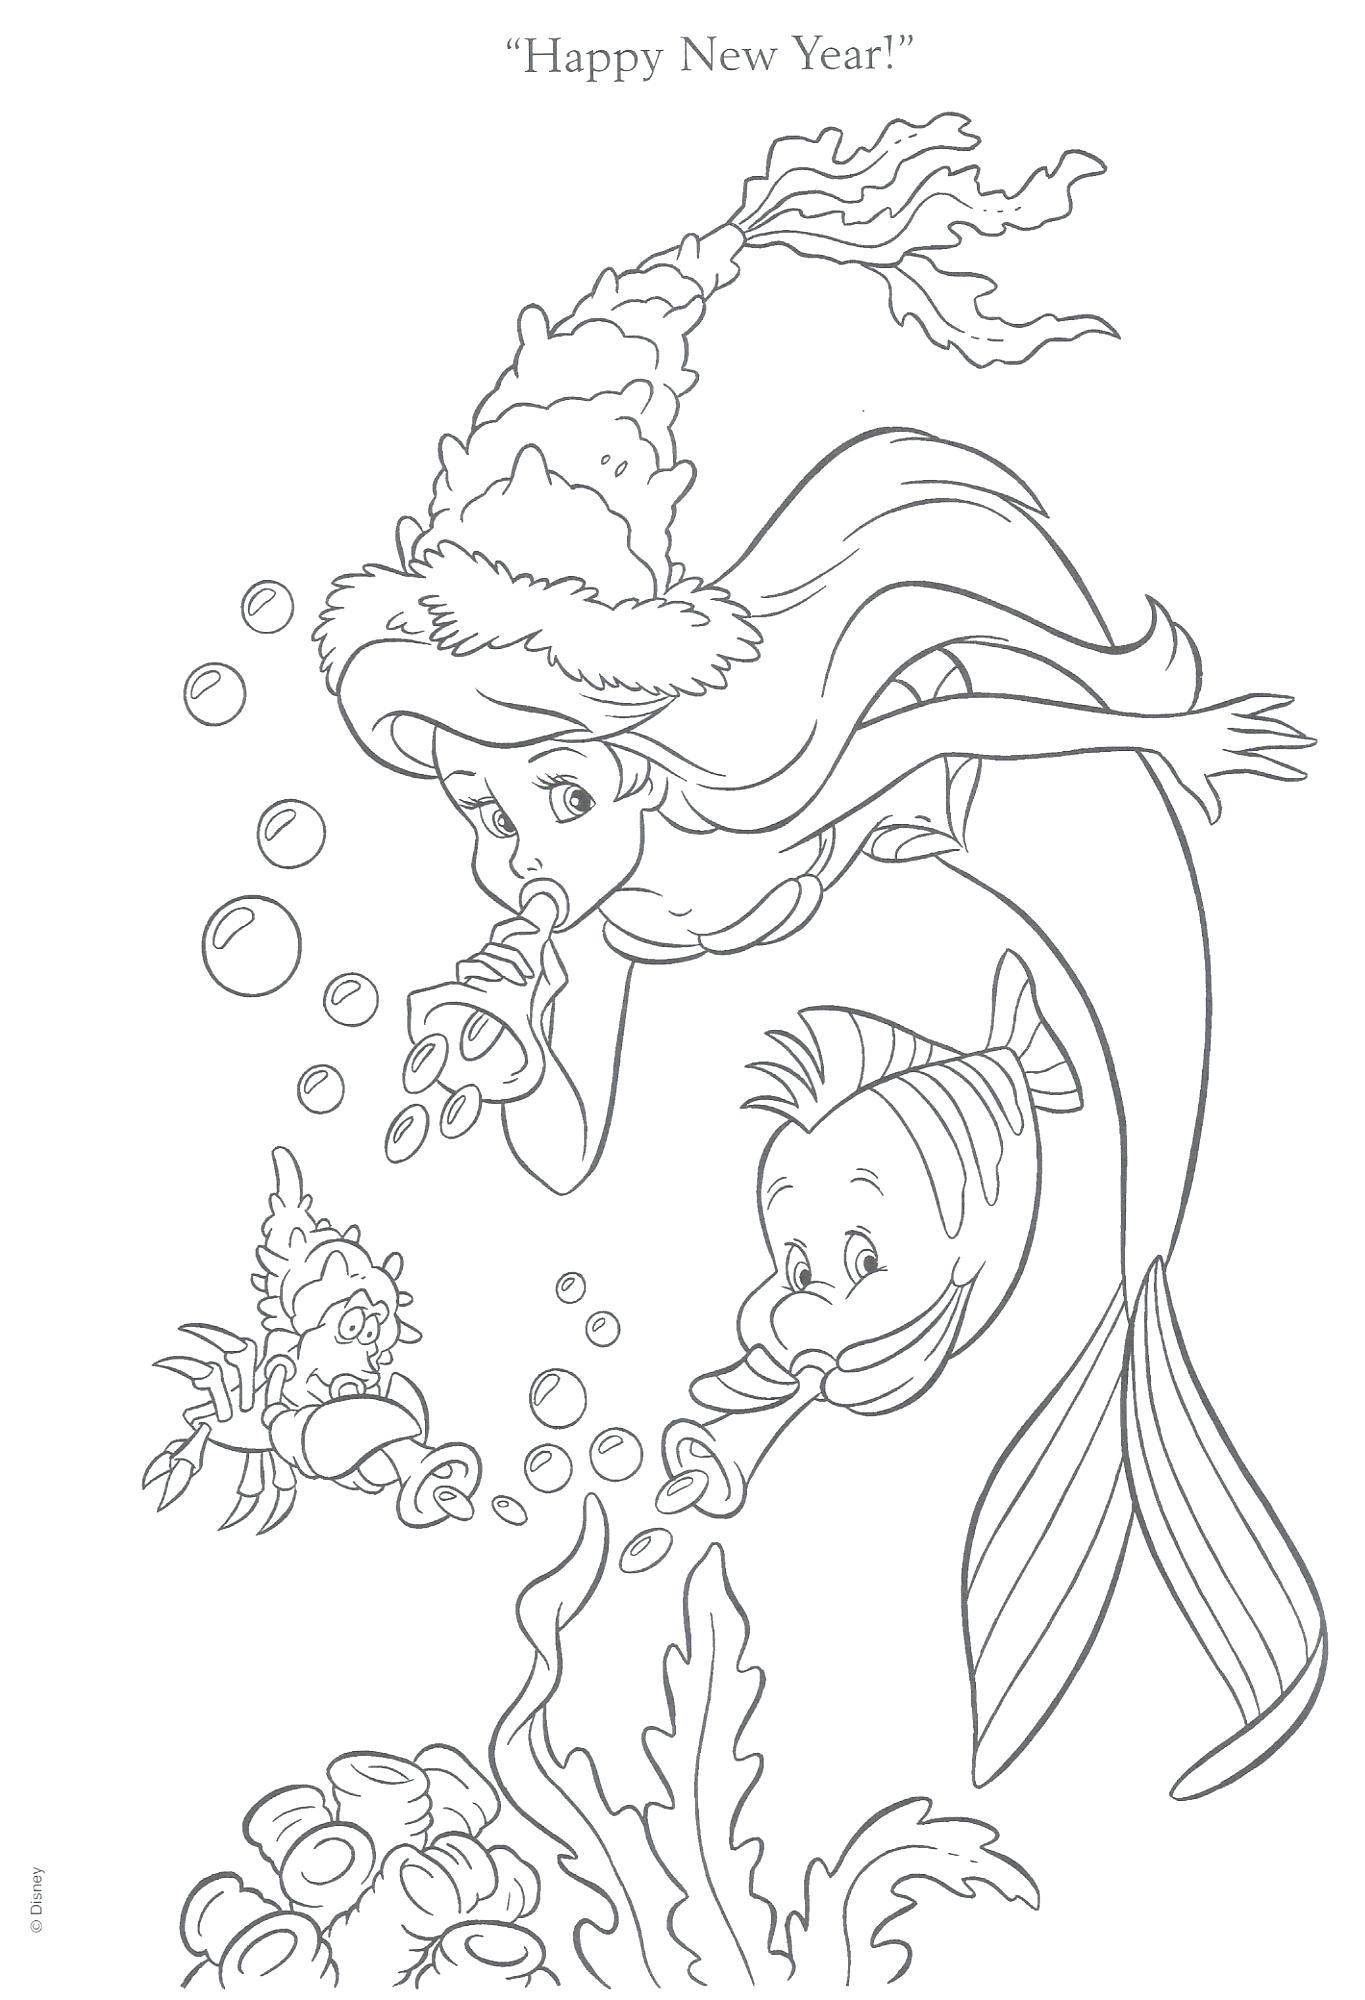 Ariel New Year Coloring Page